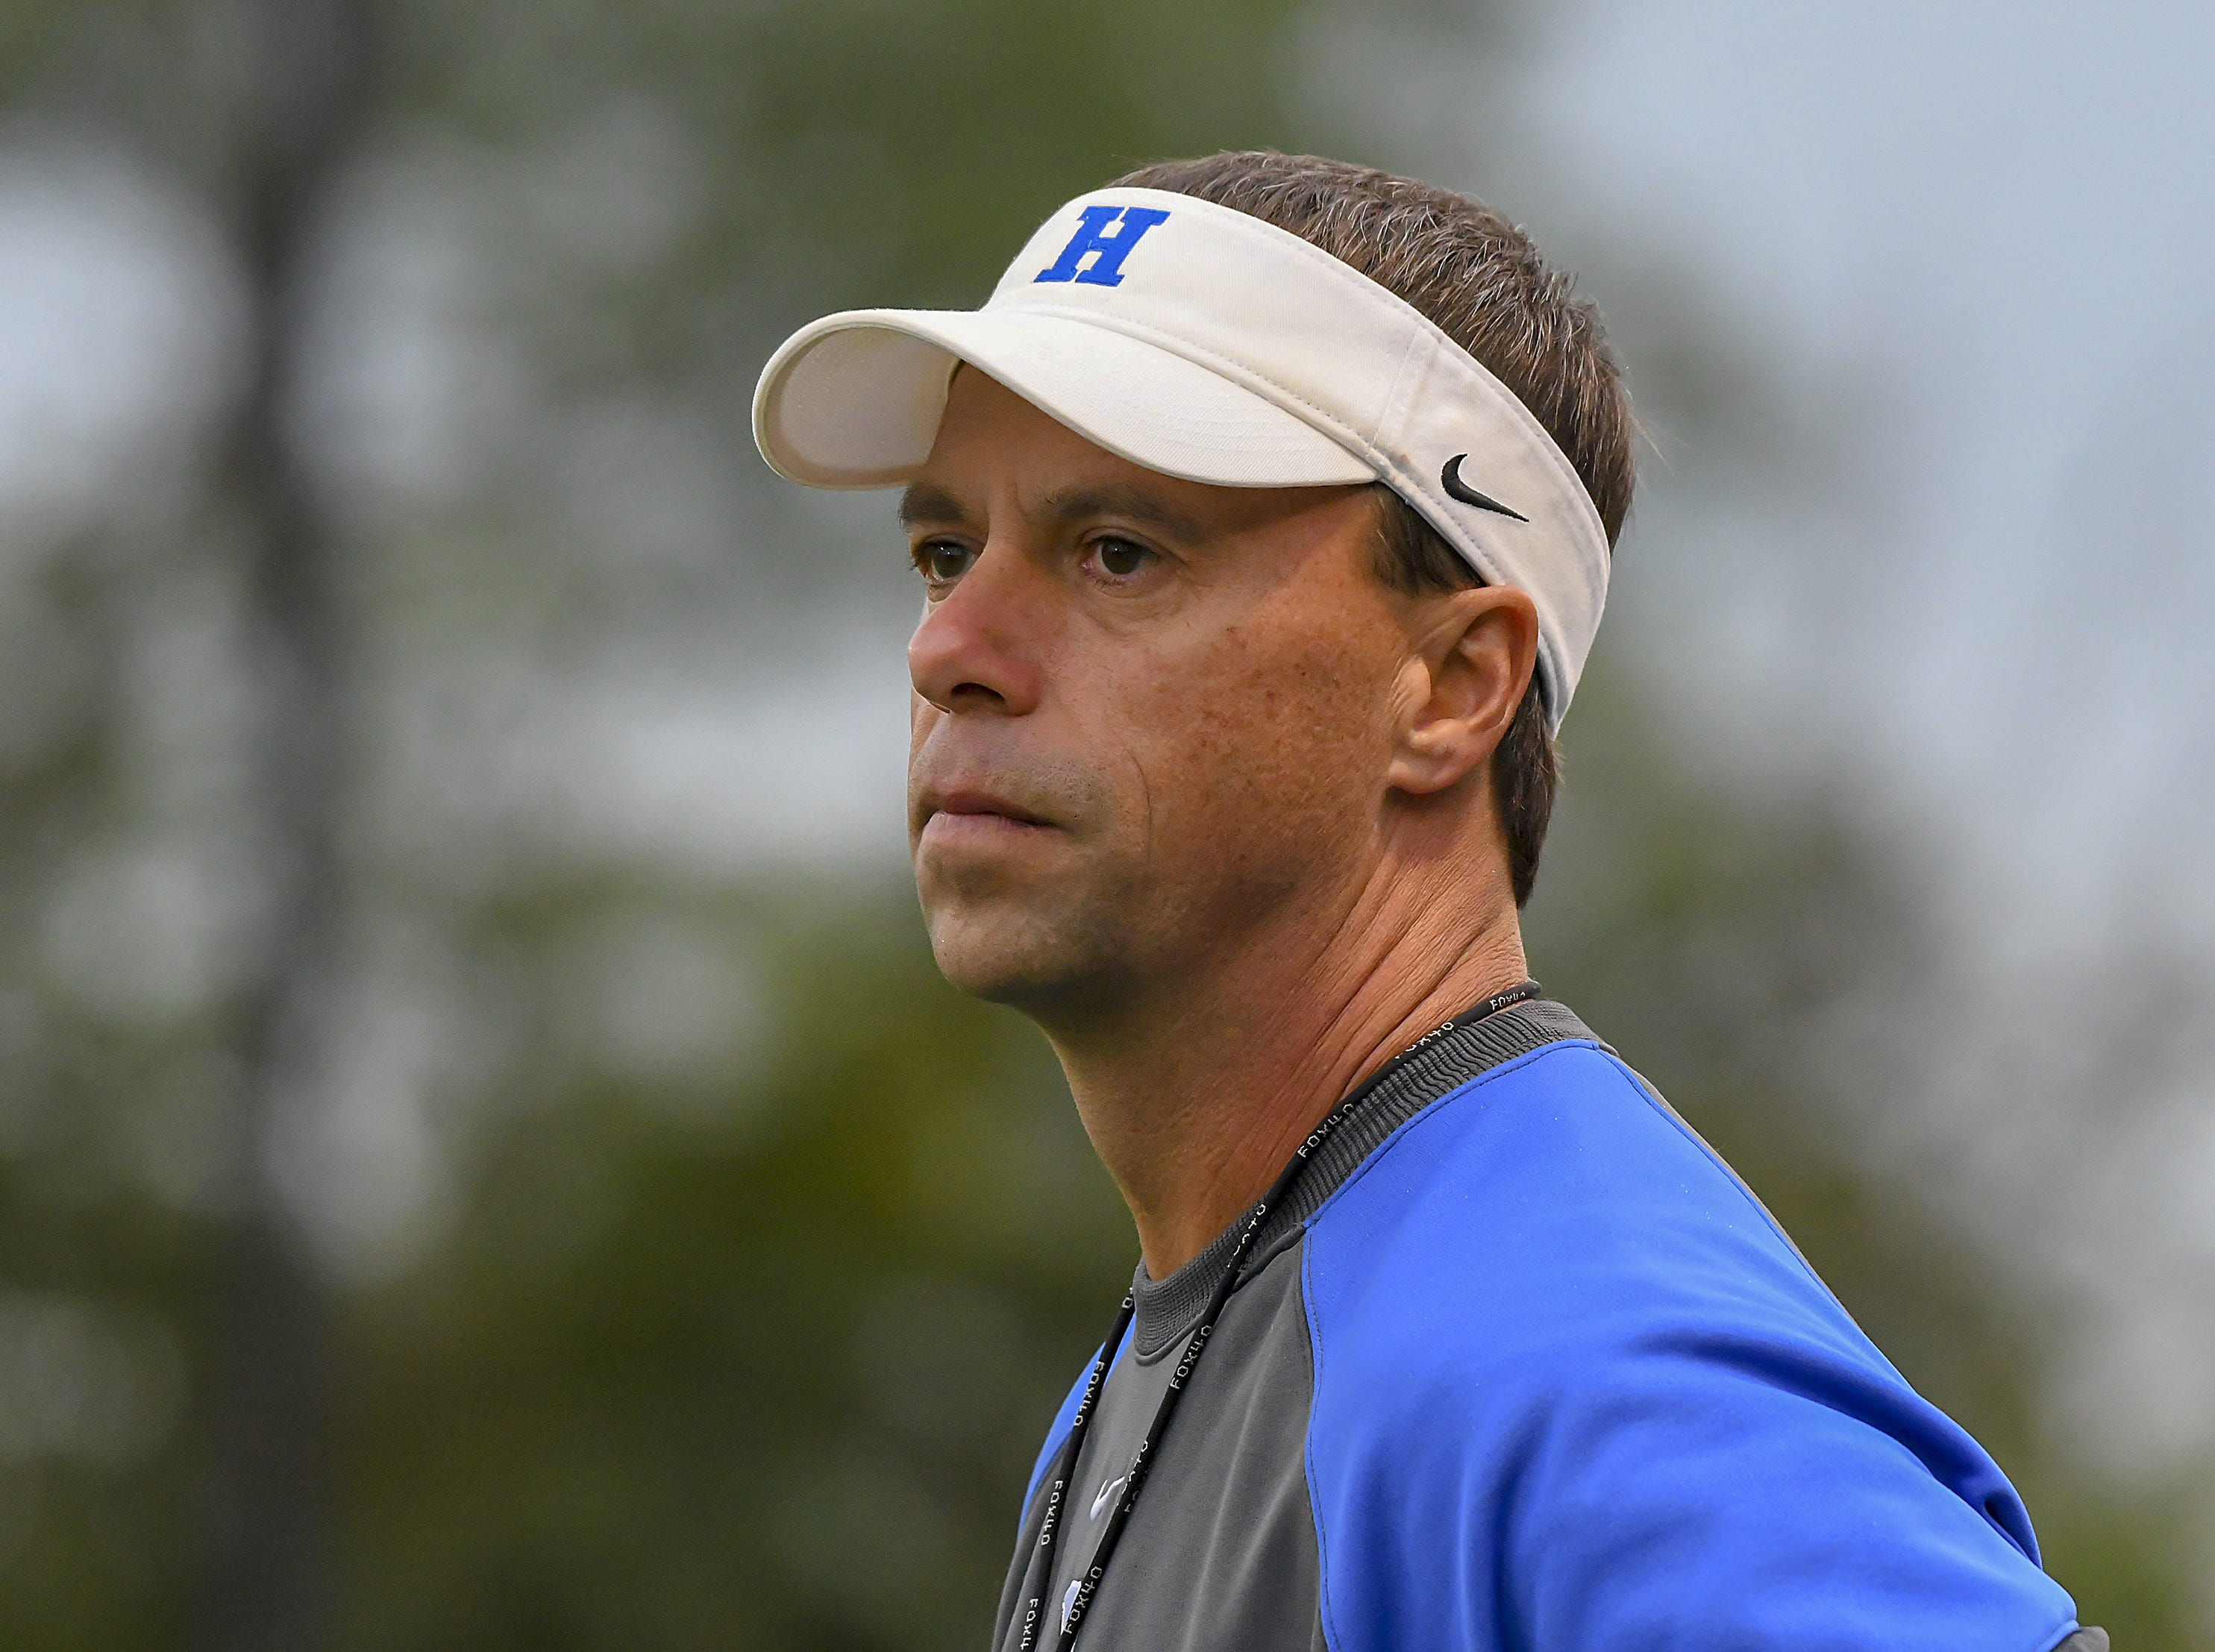 Highlands head coach Brian Weinrich watches his team play against Covington Catholic Friday, October 12, 2018